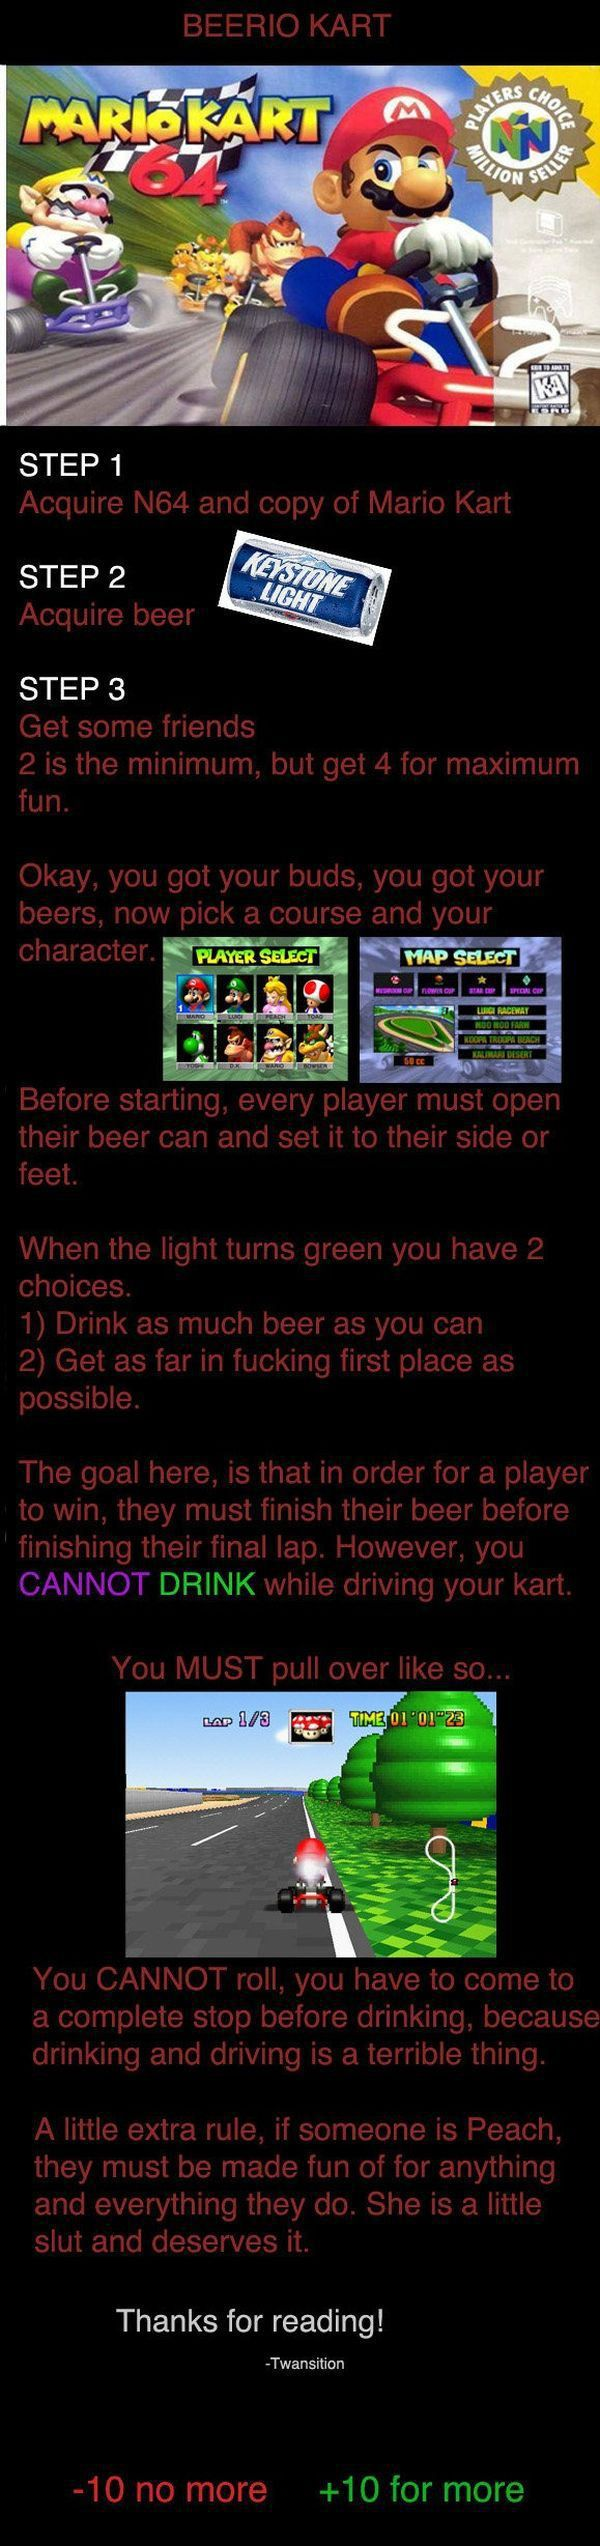 Drinking Game for Mario Kart Fans